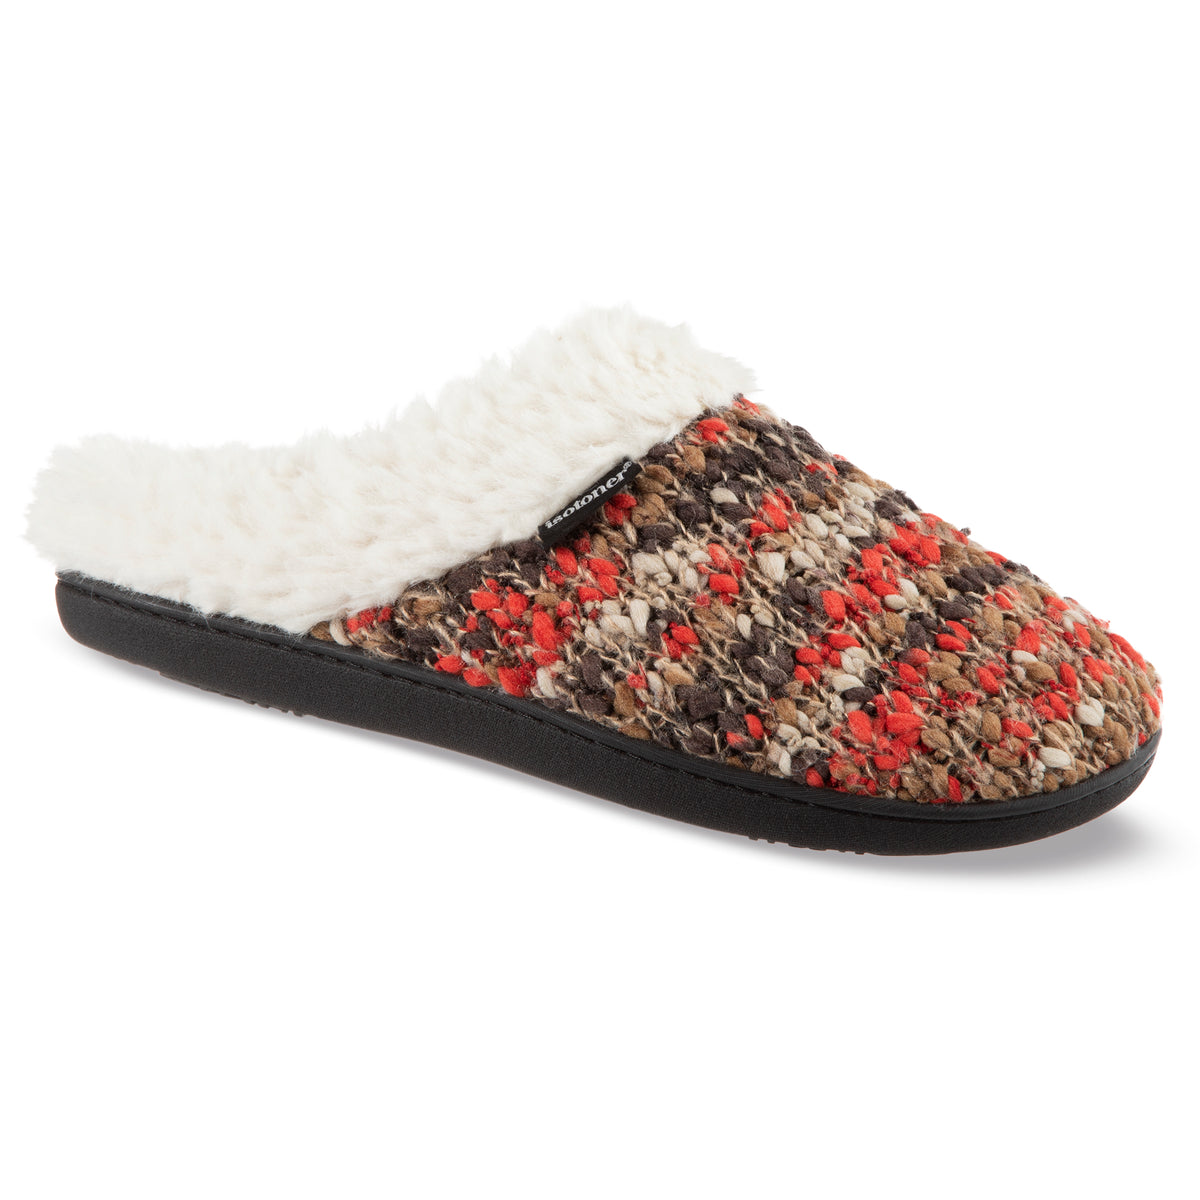 Women's Sweater Knit Amanda Hoodback Slippers in Heather with Orange Right Angled View